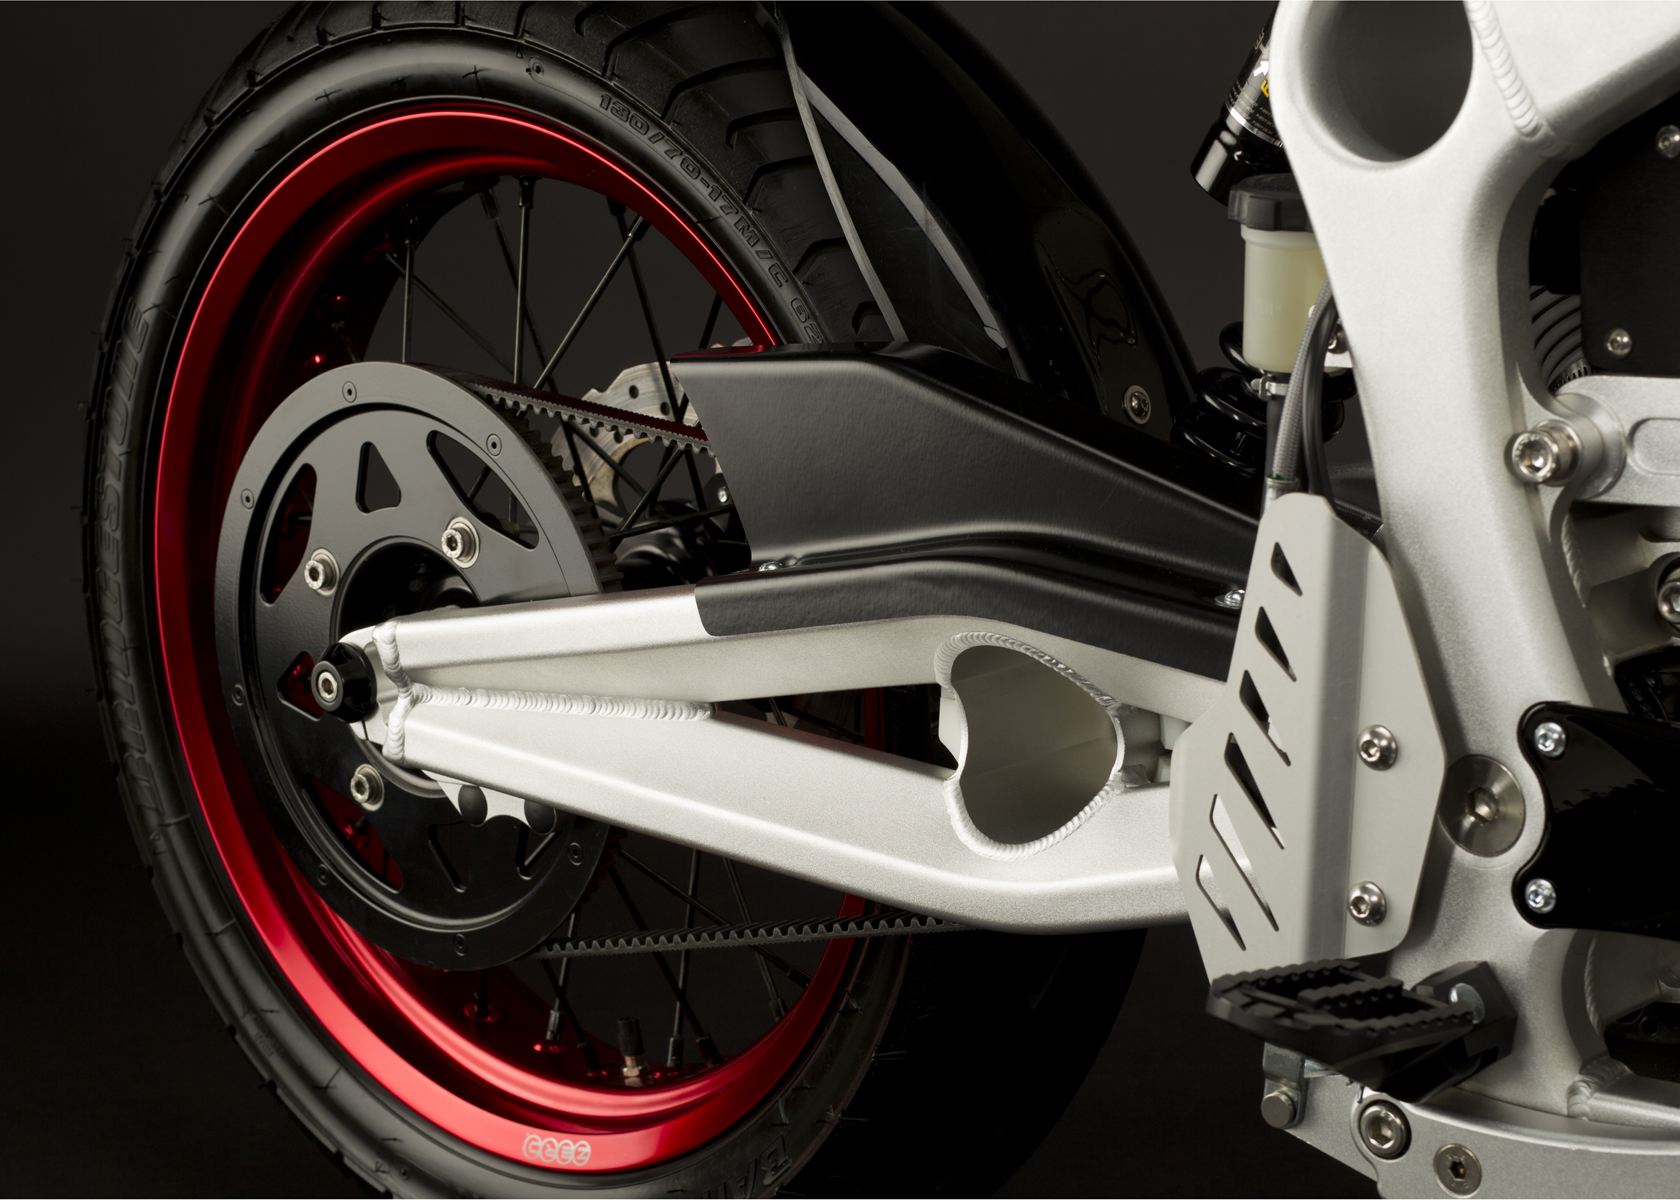 '.2011 Zero S Electric Motorcycle: Swing Arm.'